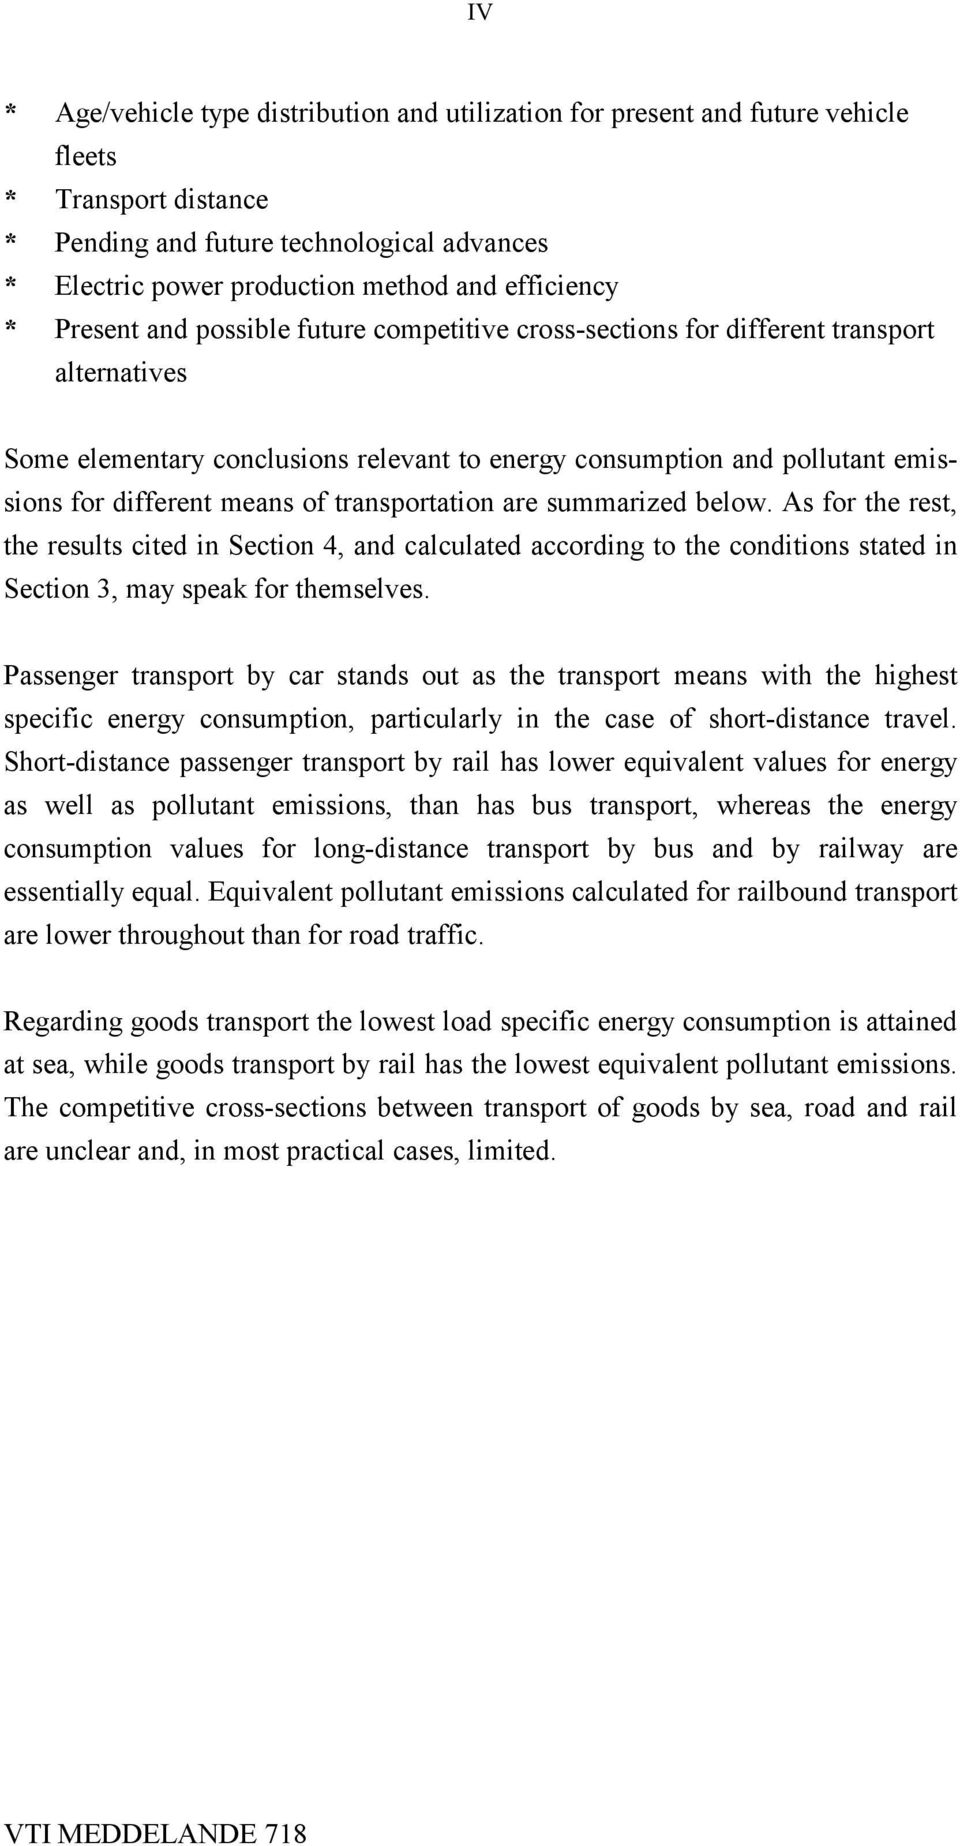 different means of transportation are summarized below. As for the rest, the results cited in Section 4, and calculated according to the conditions stated in Section 3, may speak for themselves.